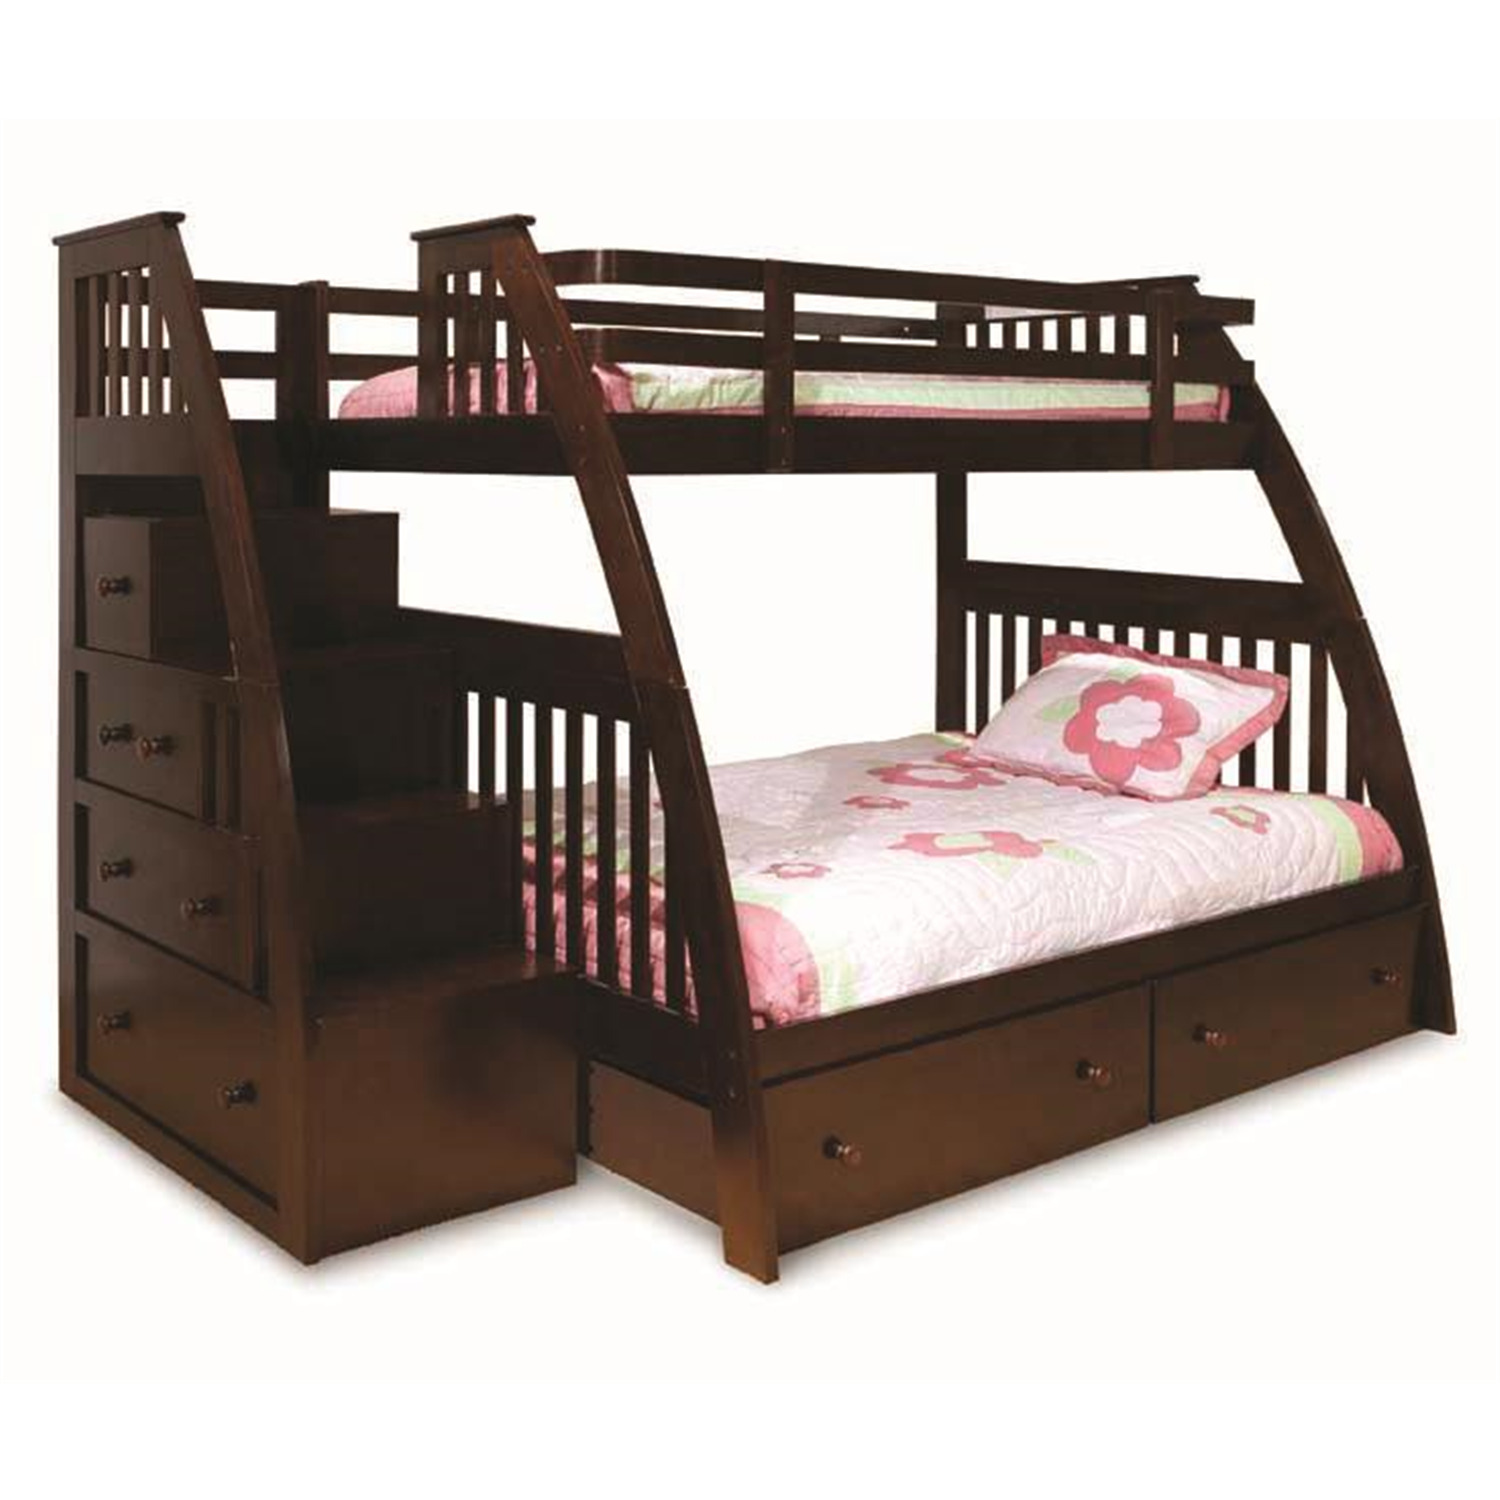 Canwood Ridgeline Twin over Full Bunk Bed with Built in Stairs